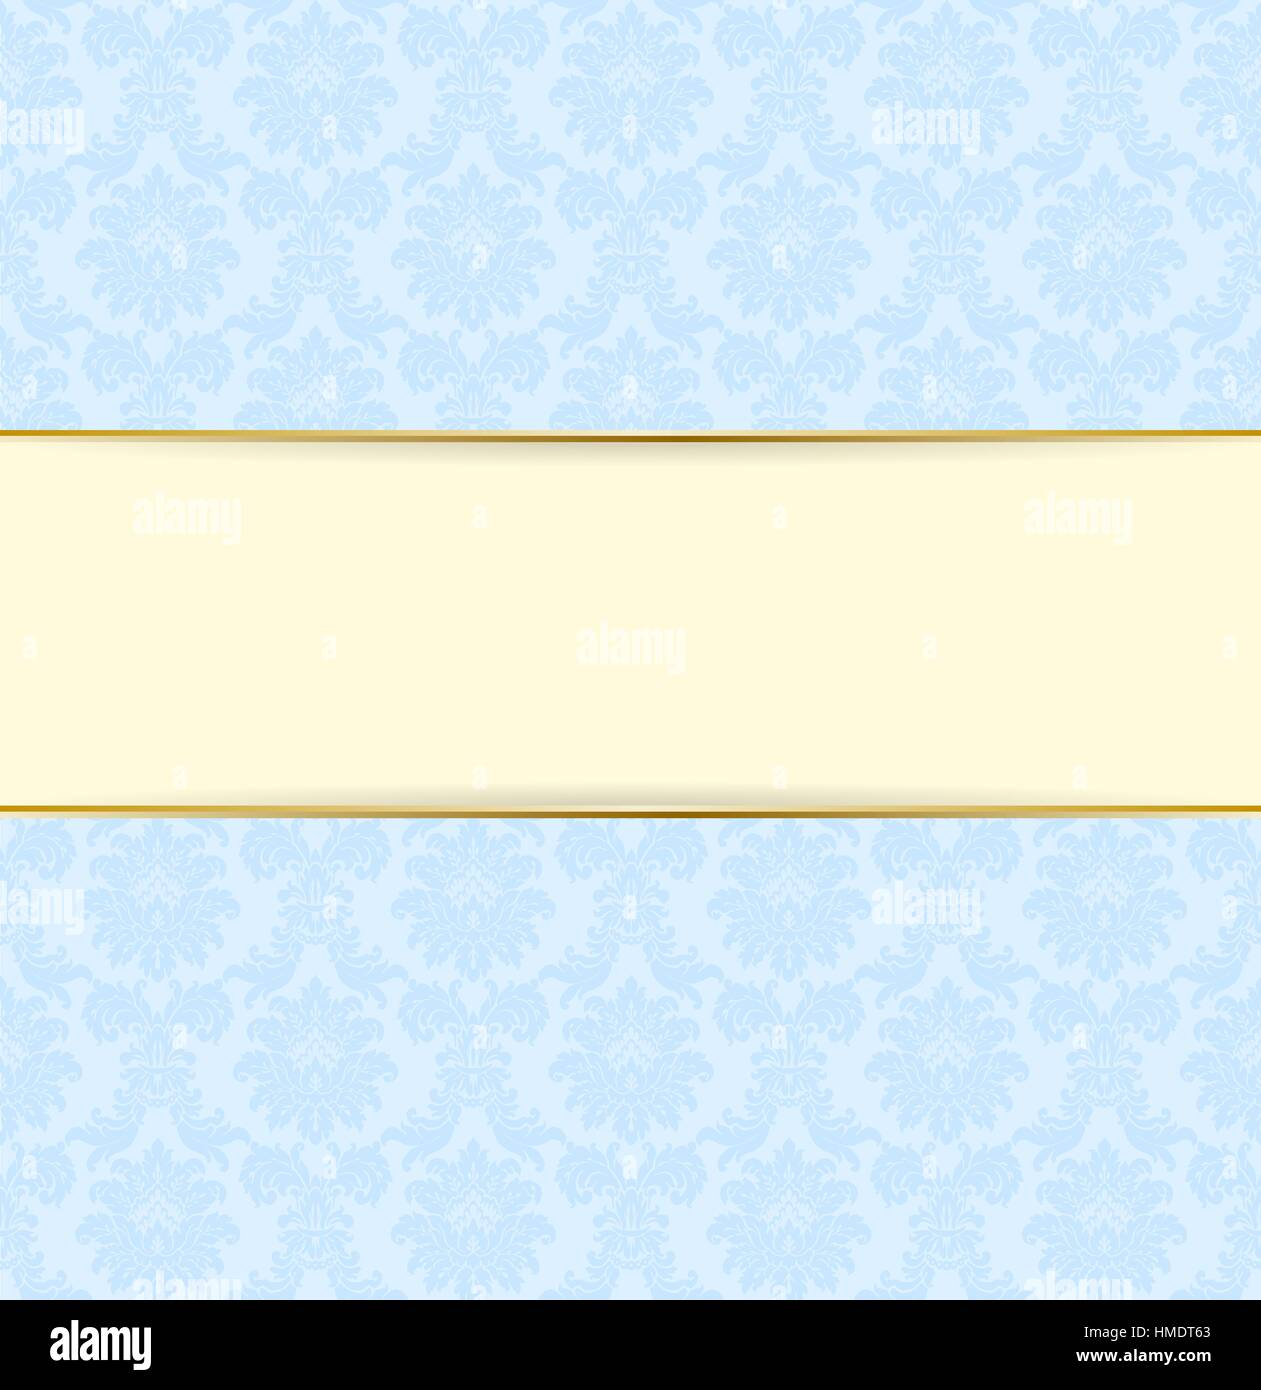 5a31ba3101d Vector blue and vanilla color retro style banner. Light frame design with  golden line. Floral background with text line. Vintage card design